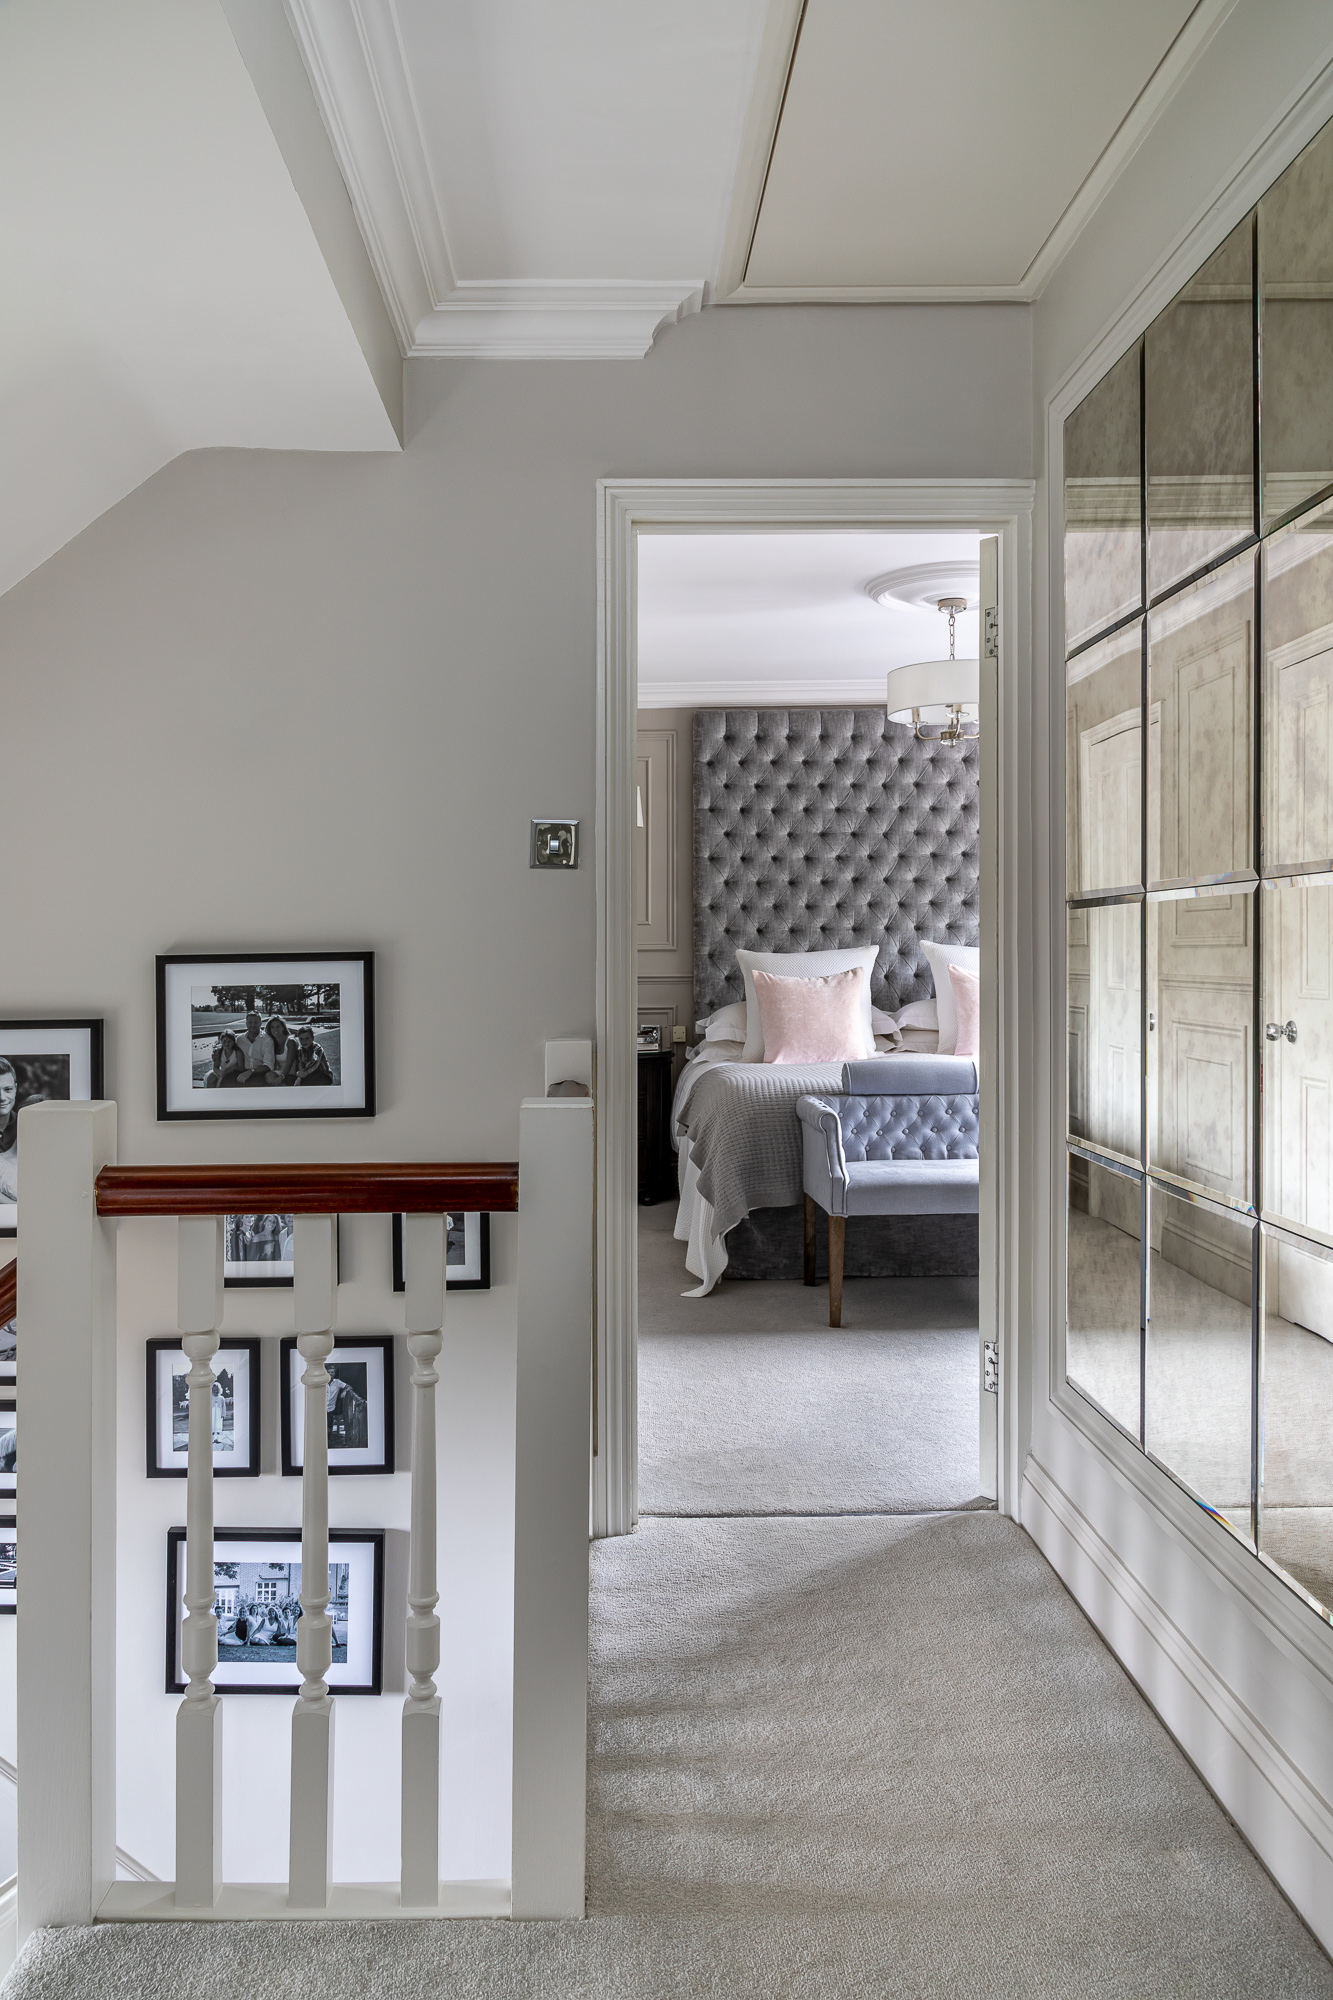 jonathan bond, interior photographer, landing view of bedroom, harlow